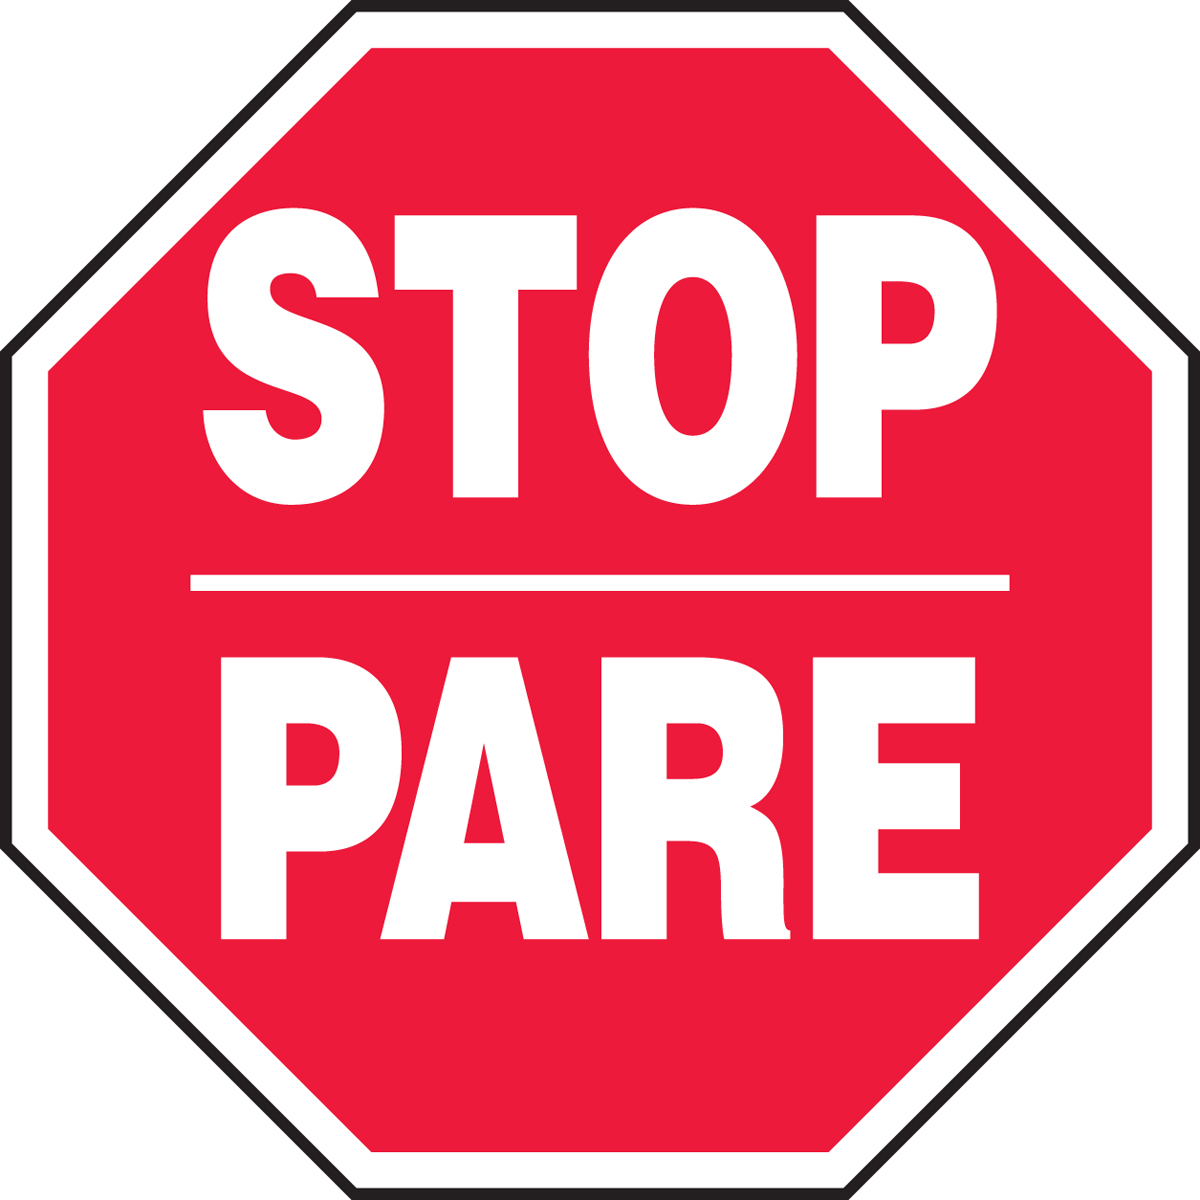 STOP / PARE